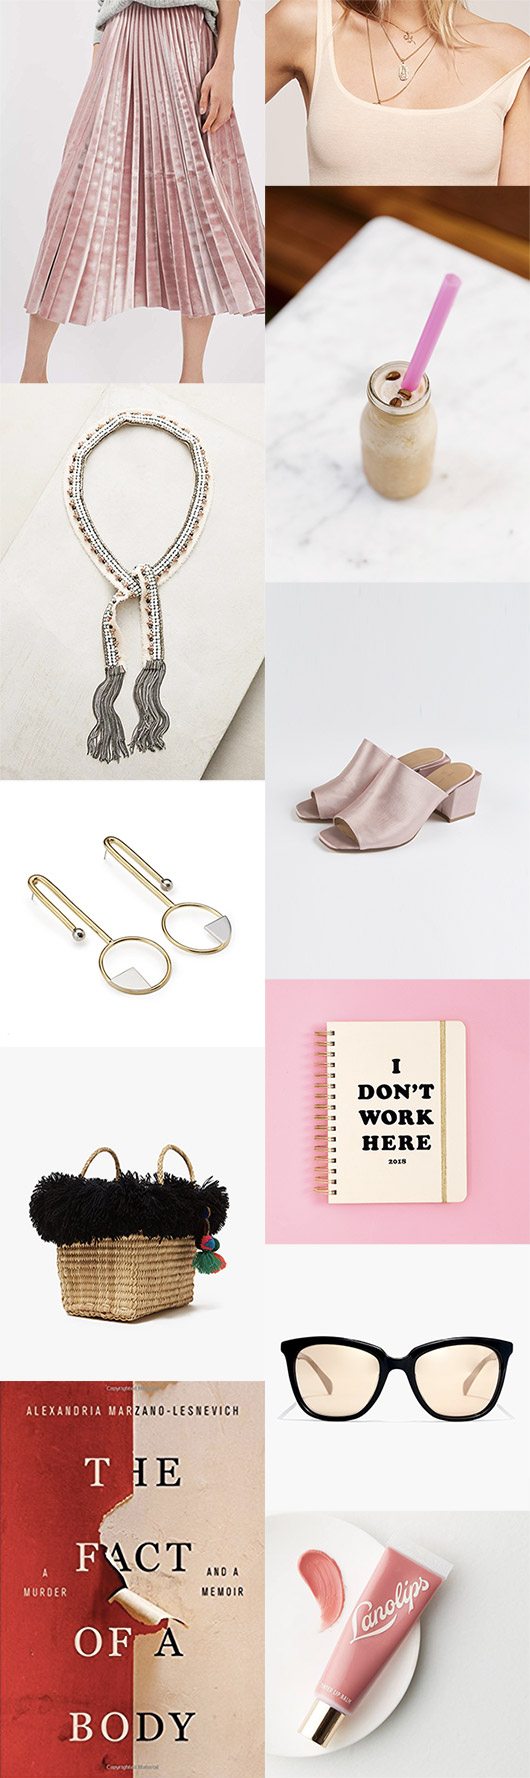 wear this there: loosie's. / sfgirlbybay